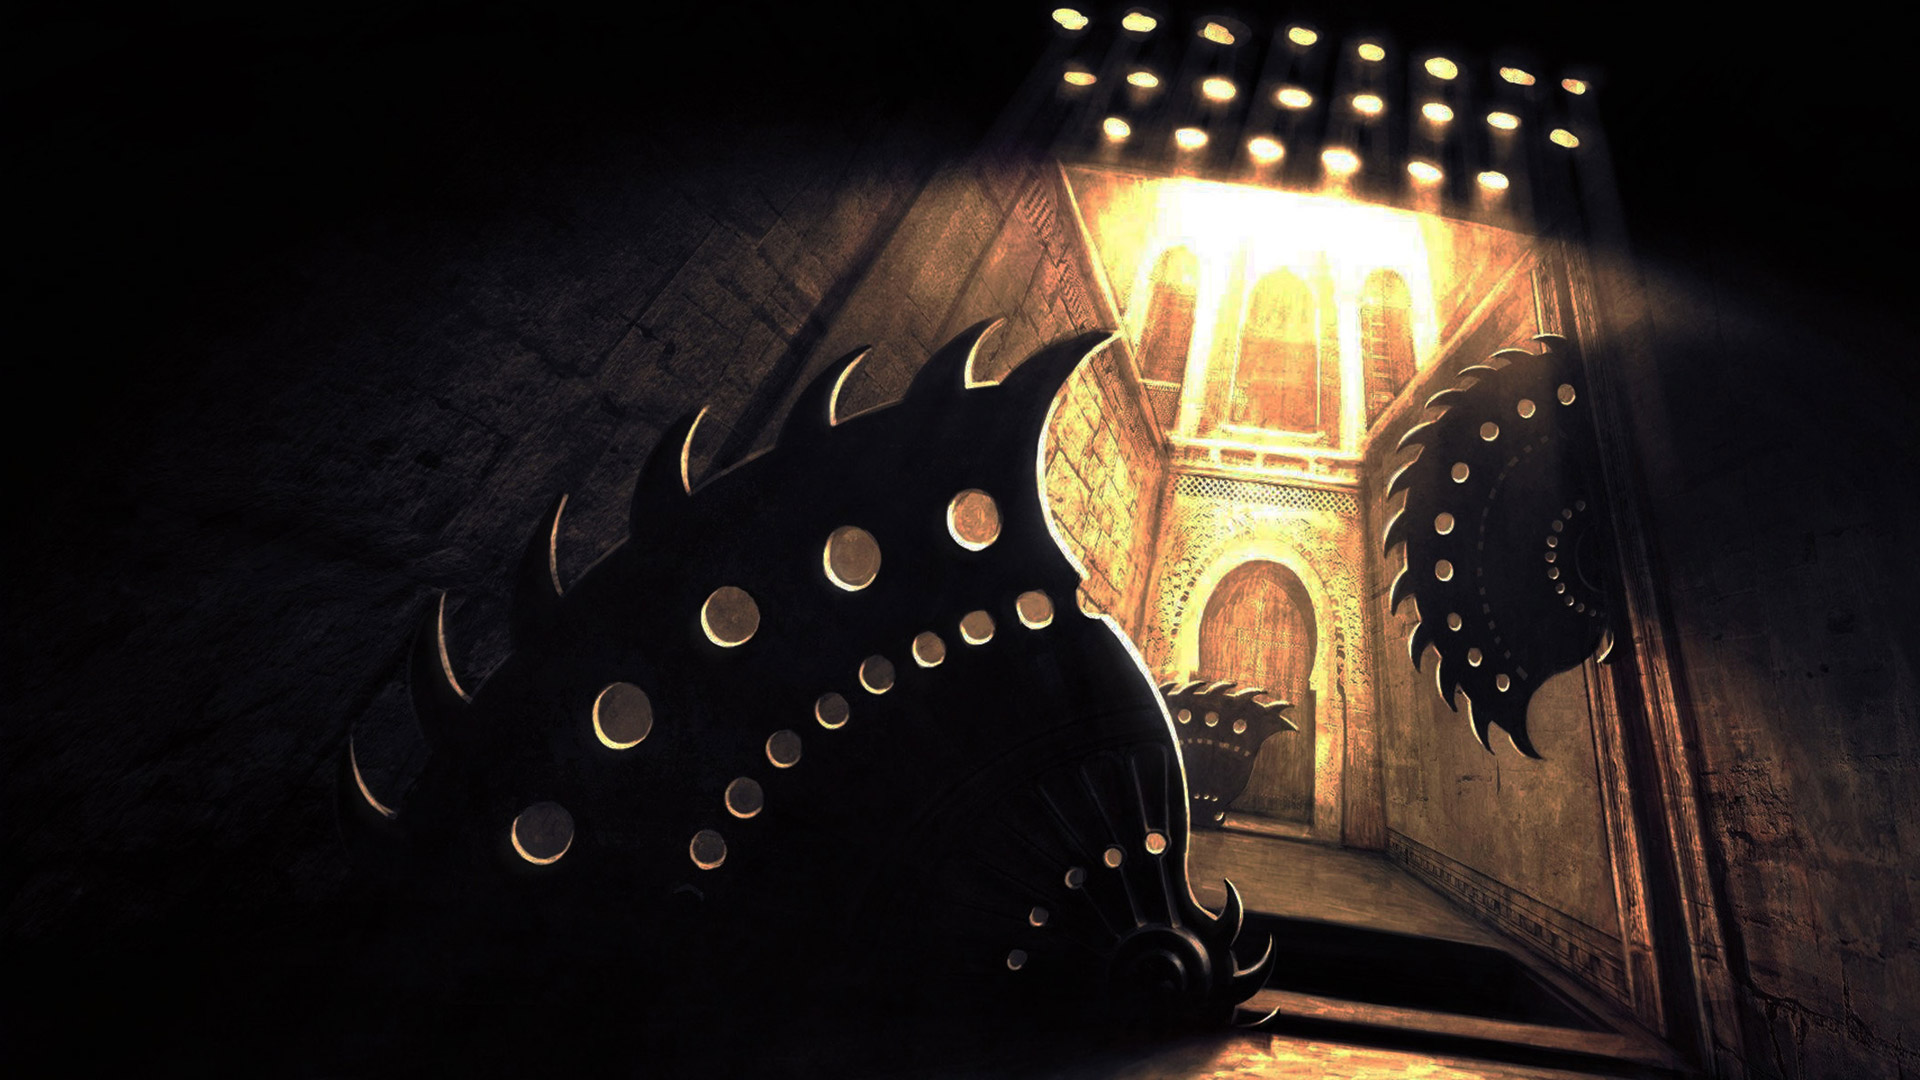 Prince of Persia: The Sands of Time Wallpaper in 1920x1080